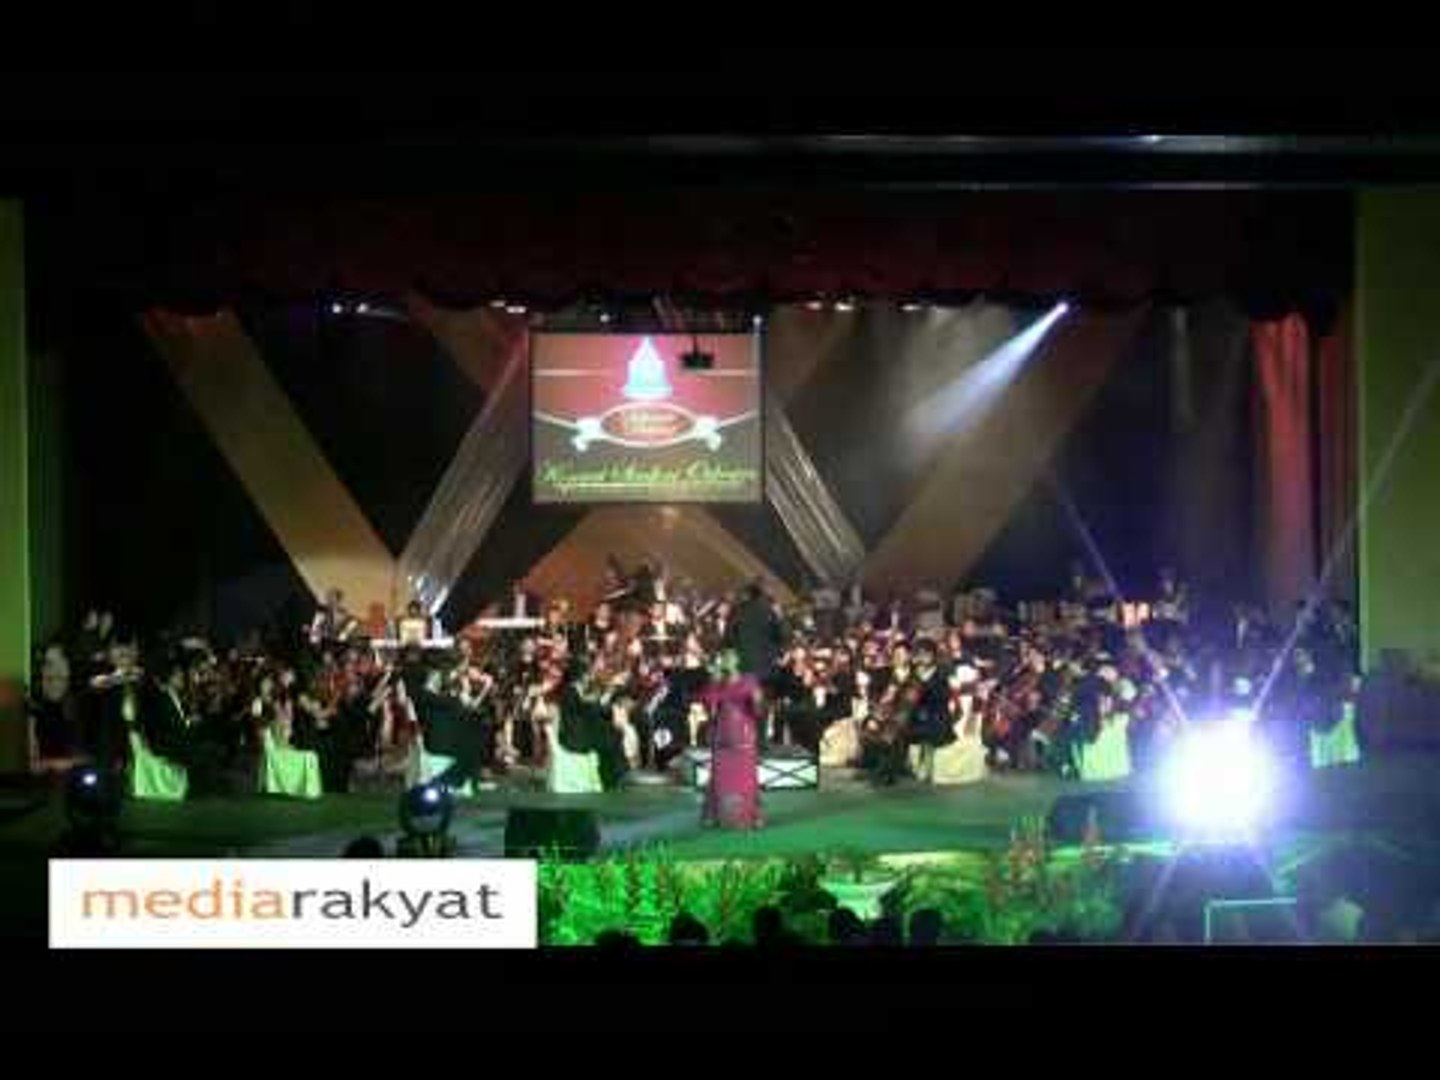 MBPJ Symphony Orchestra Concert 2010: Save The Last Dance For Me